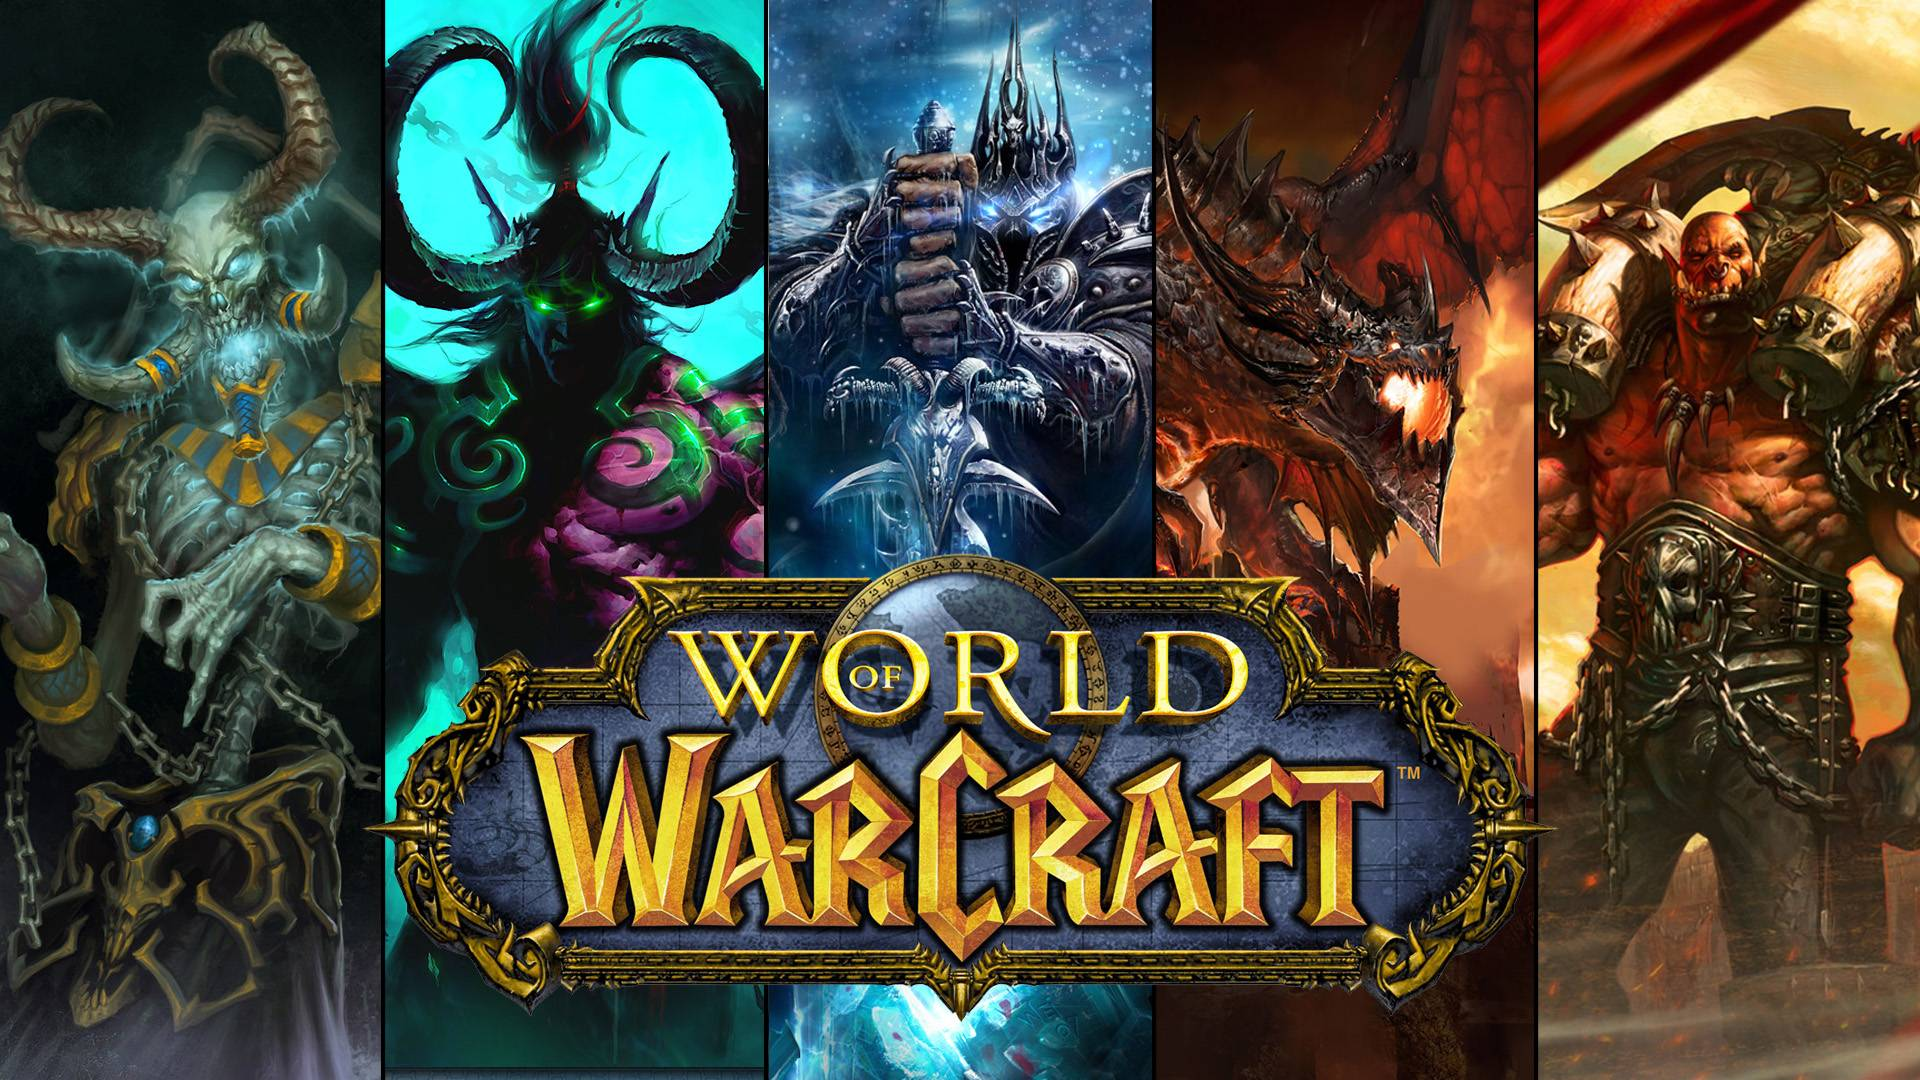 Immergersi nell'universo di World of Warcraft, oggi